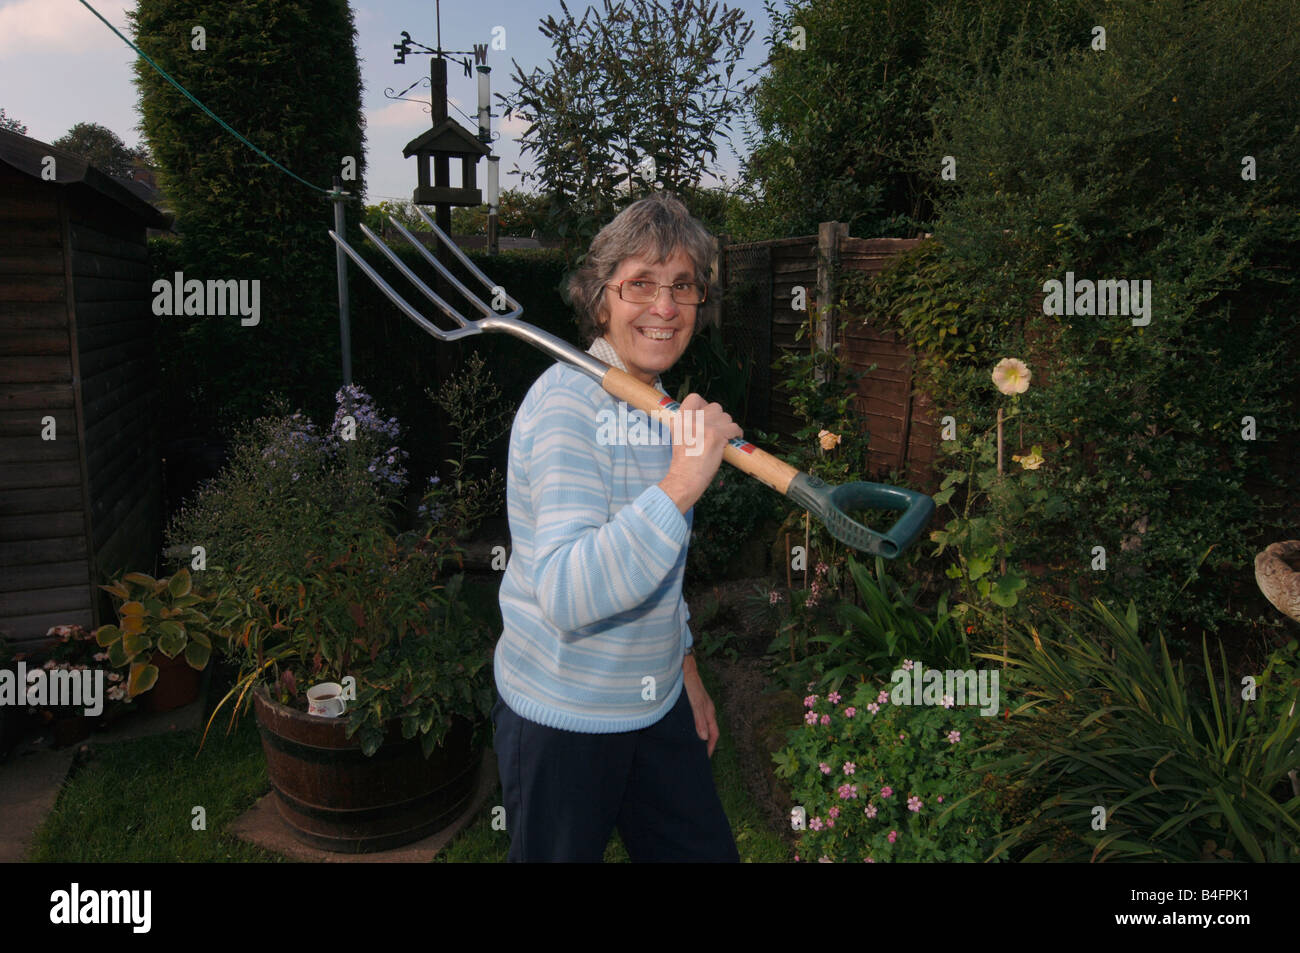 A Woman In Her Seventies Posing With A Garden Fork - Stock Image